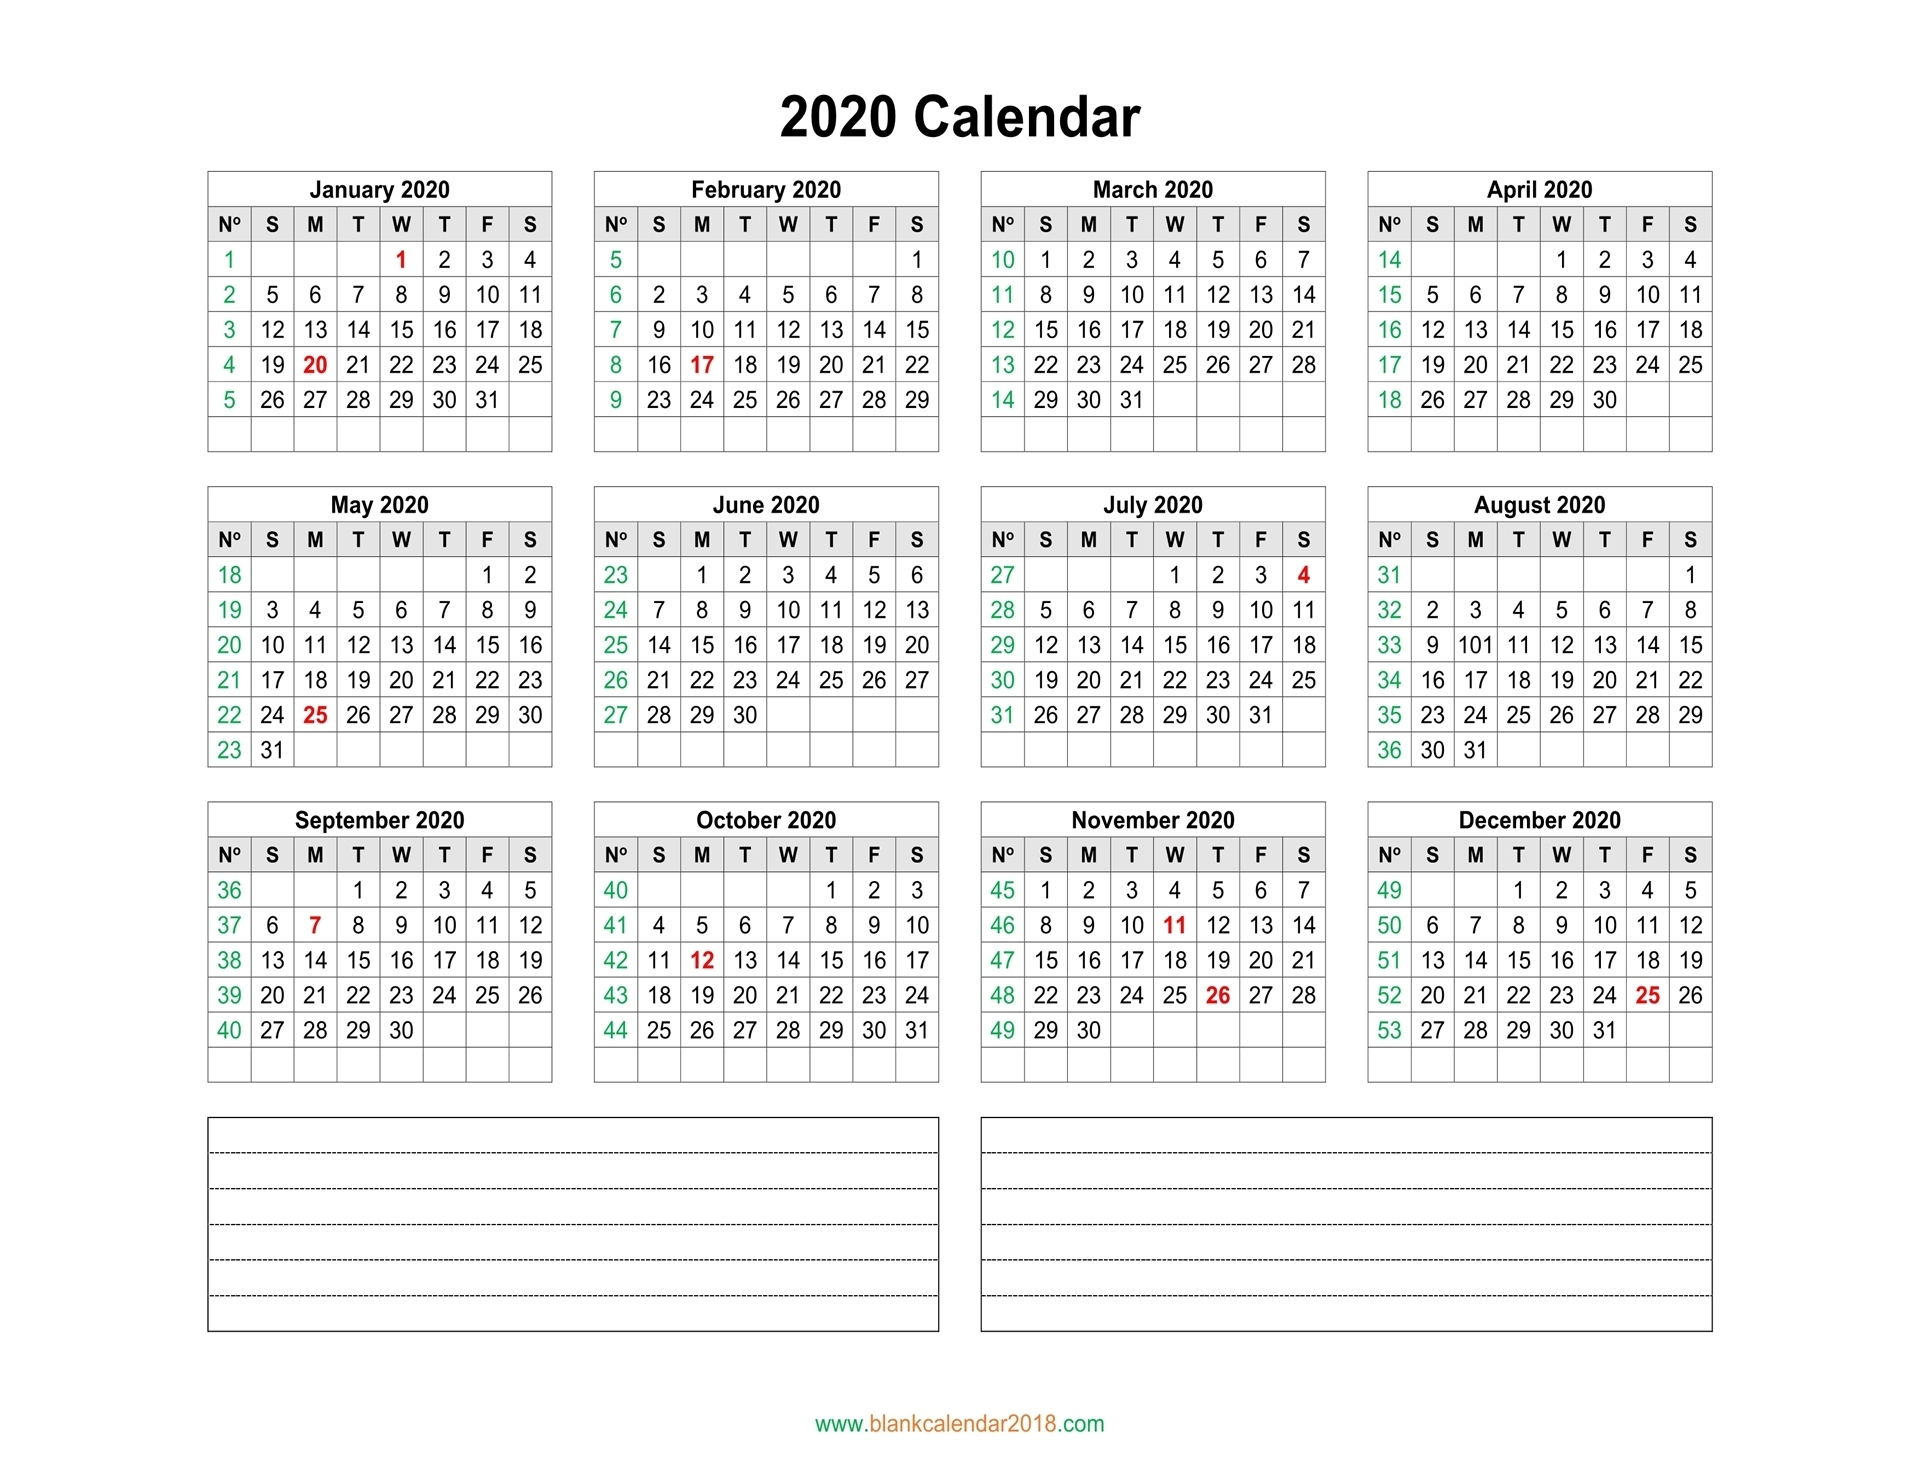 Blank Calendar 2020 Remarkable Printable Calendar With Numbered Days 2020